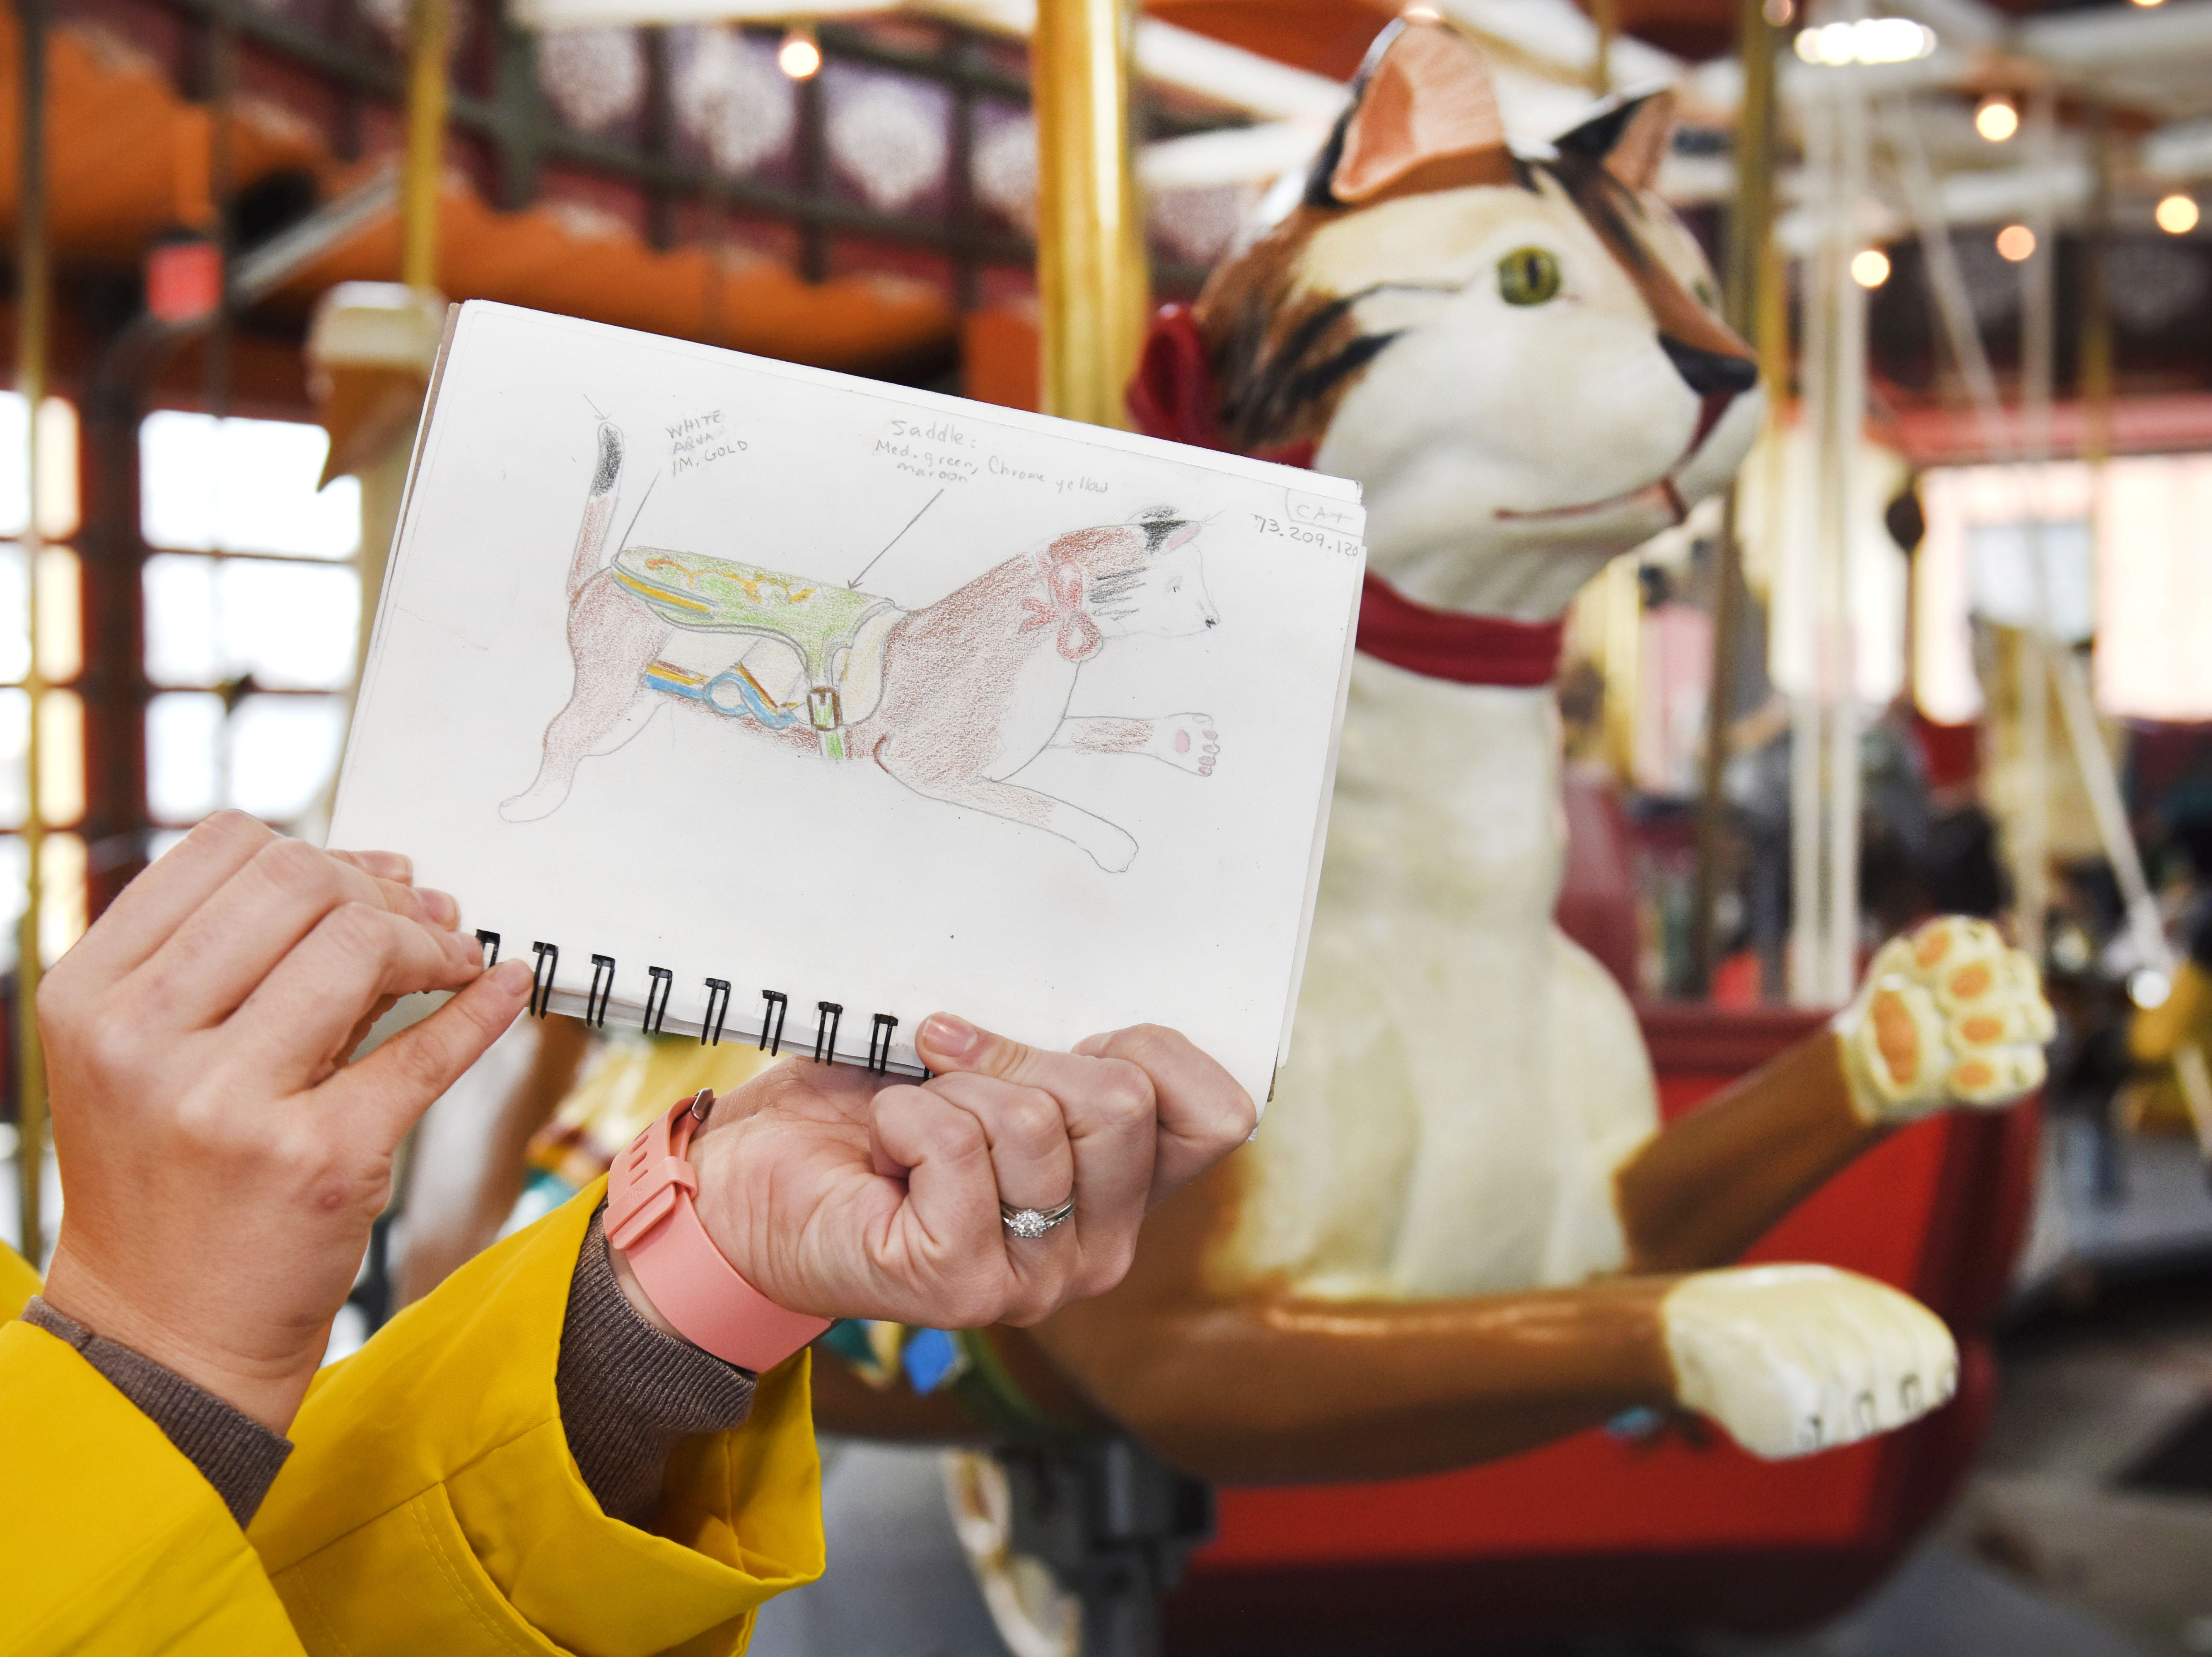 One of Julie Fournier's drawings matches the restored cat carousel figure at Greenfield Village in Dearborn.